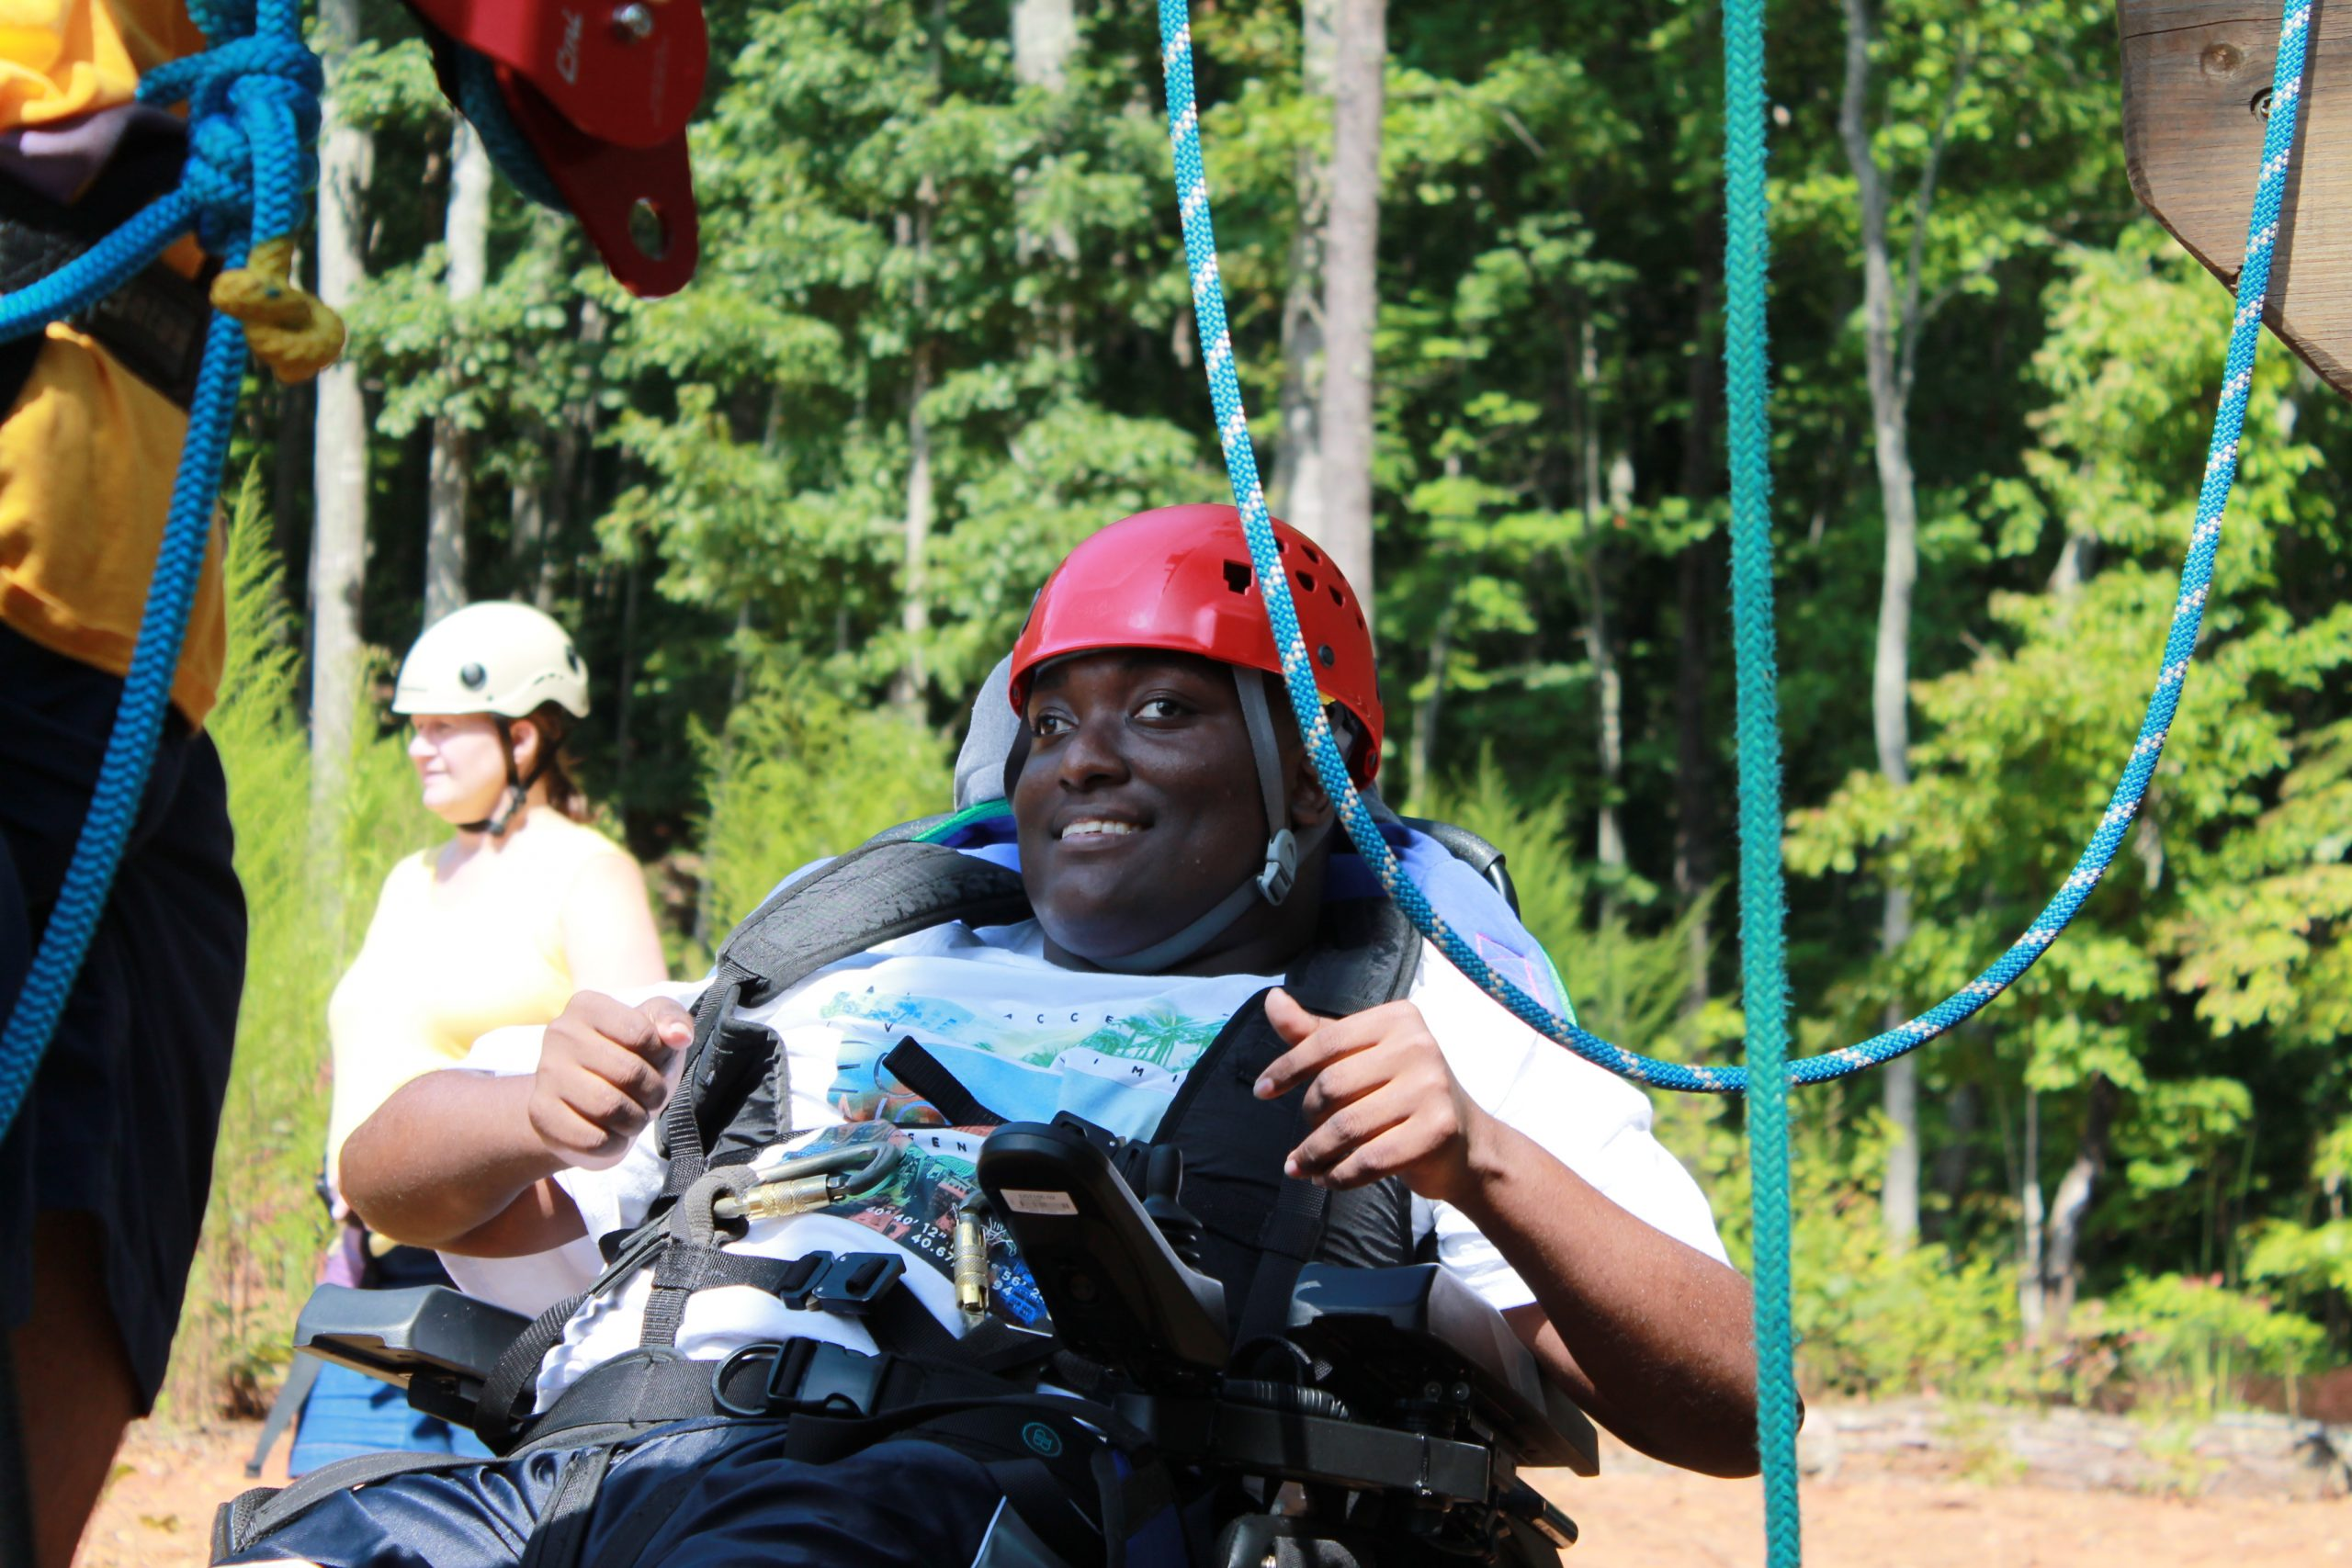 girl on outdoor course in wheelchair